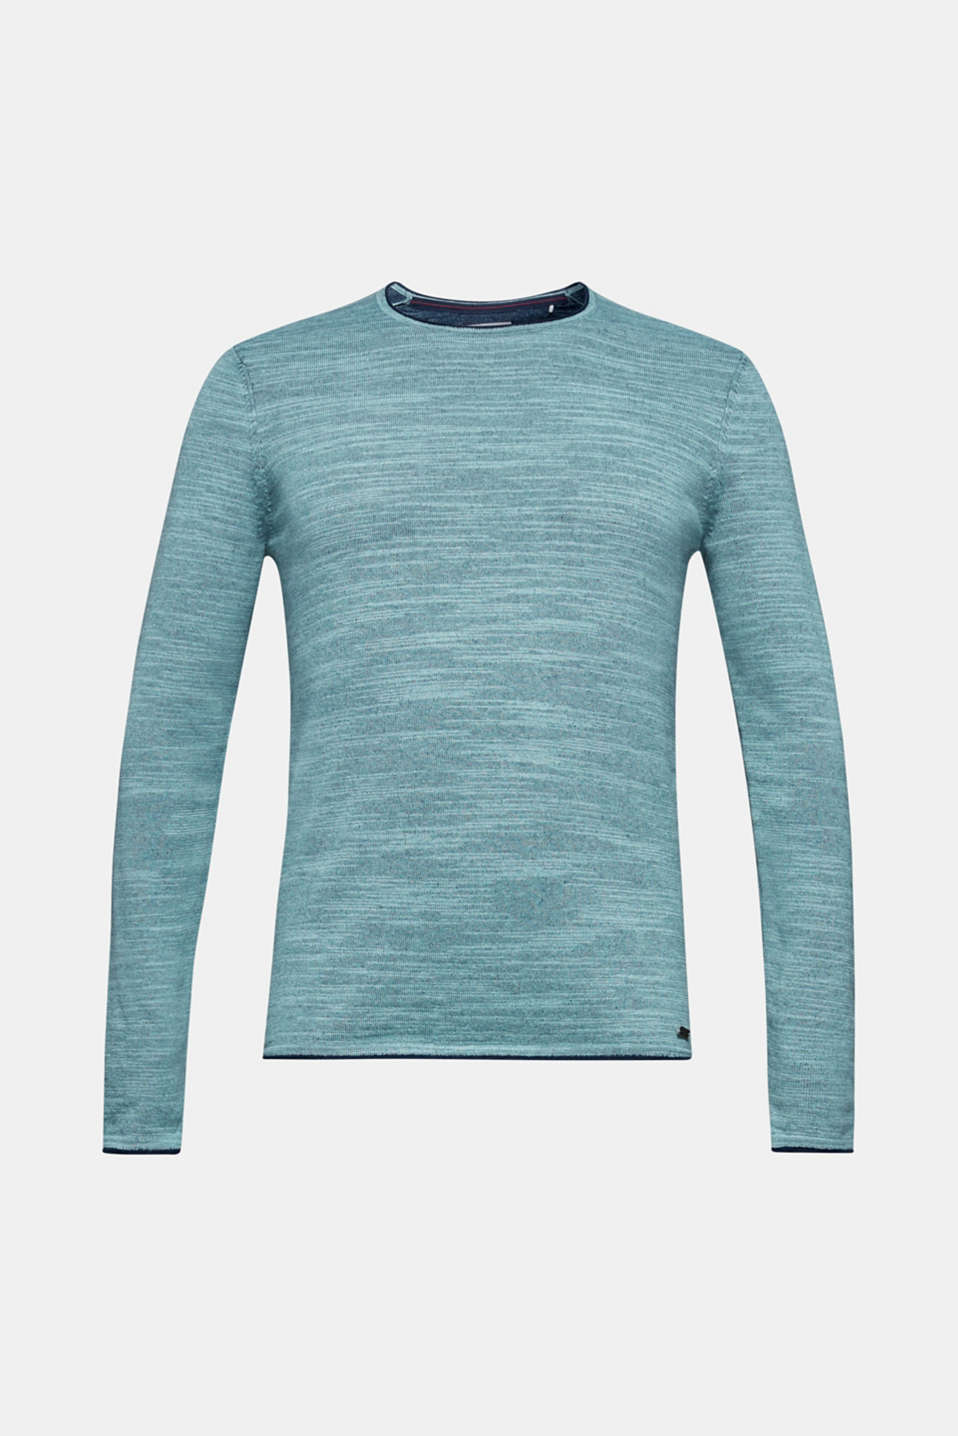 An EDC classic - back in stock: bi-colour knit jumper with cool, rolled edges.